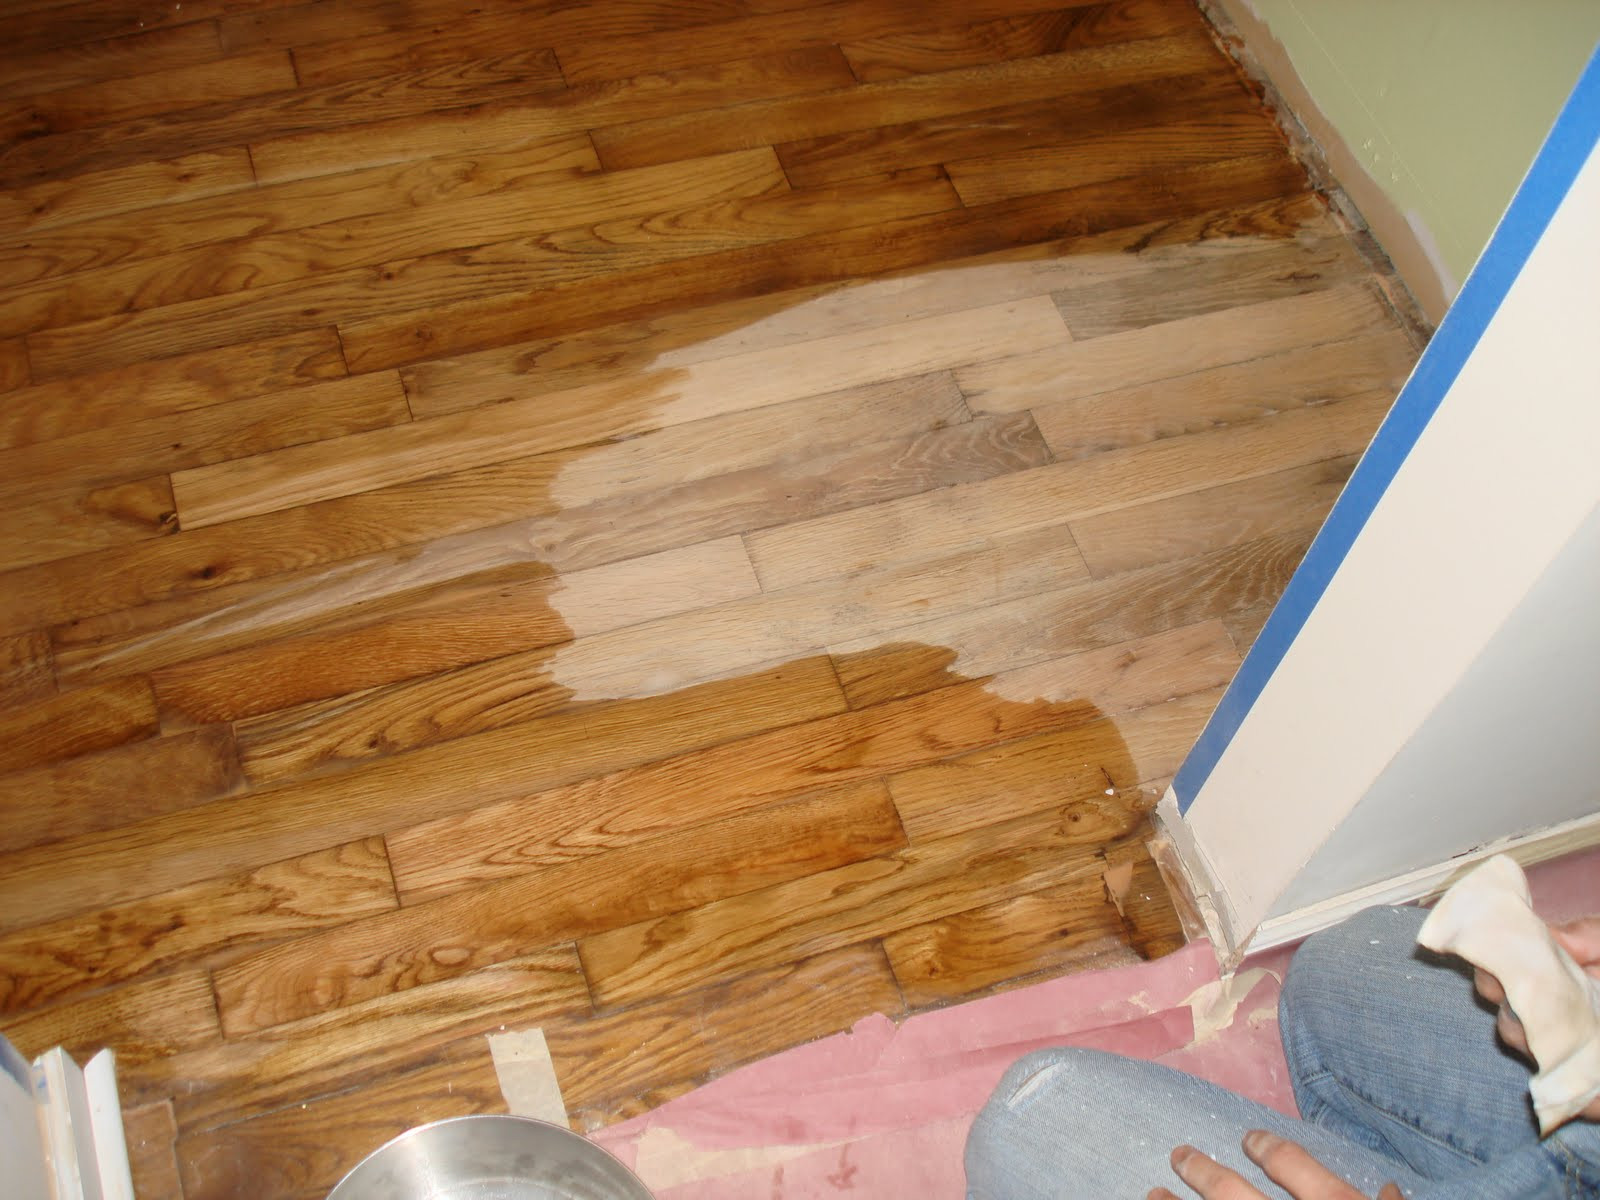 minwax hardwood floor stain colors of minwax stains on red oak floors houses flooring picture ideas throughout minwax stains on red oak floors houses flooring picture ideas